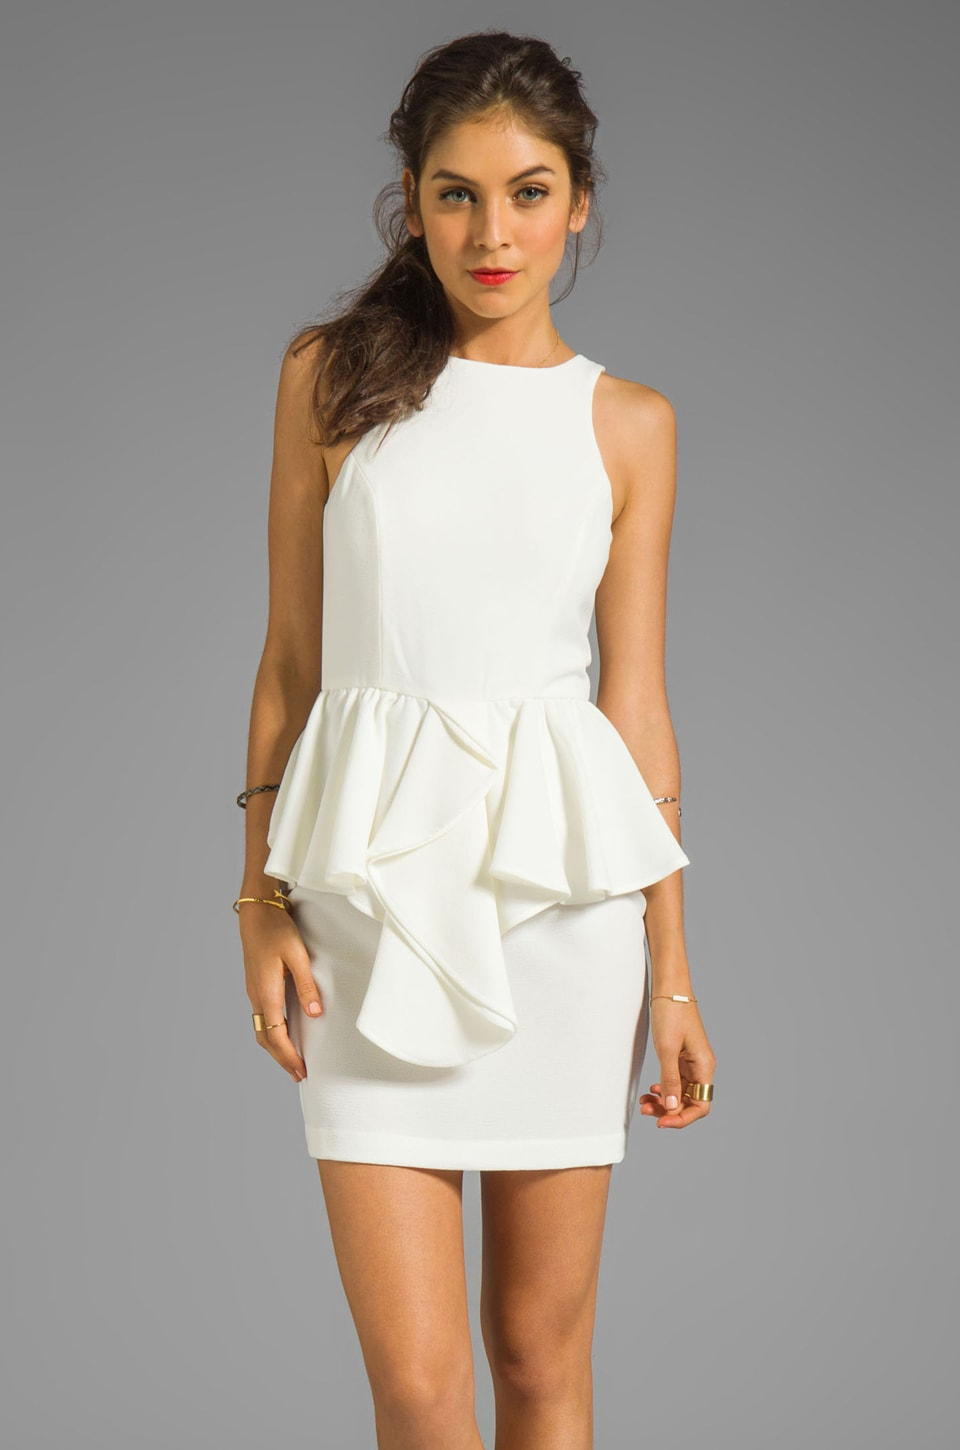 Talulah The Jasper Crystal Dress in Off-White